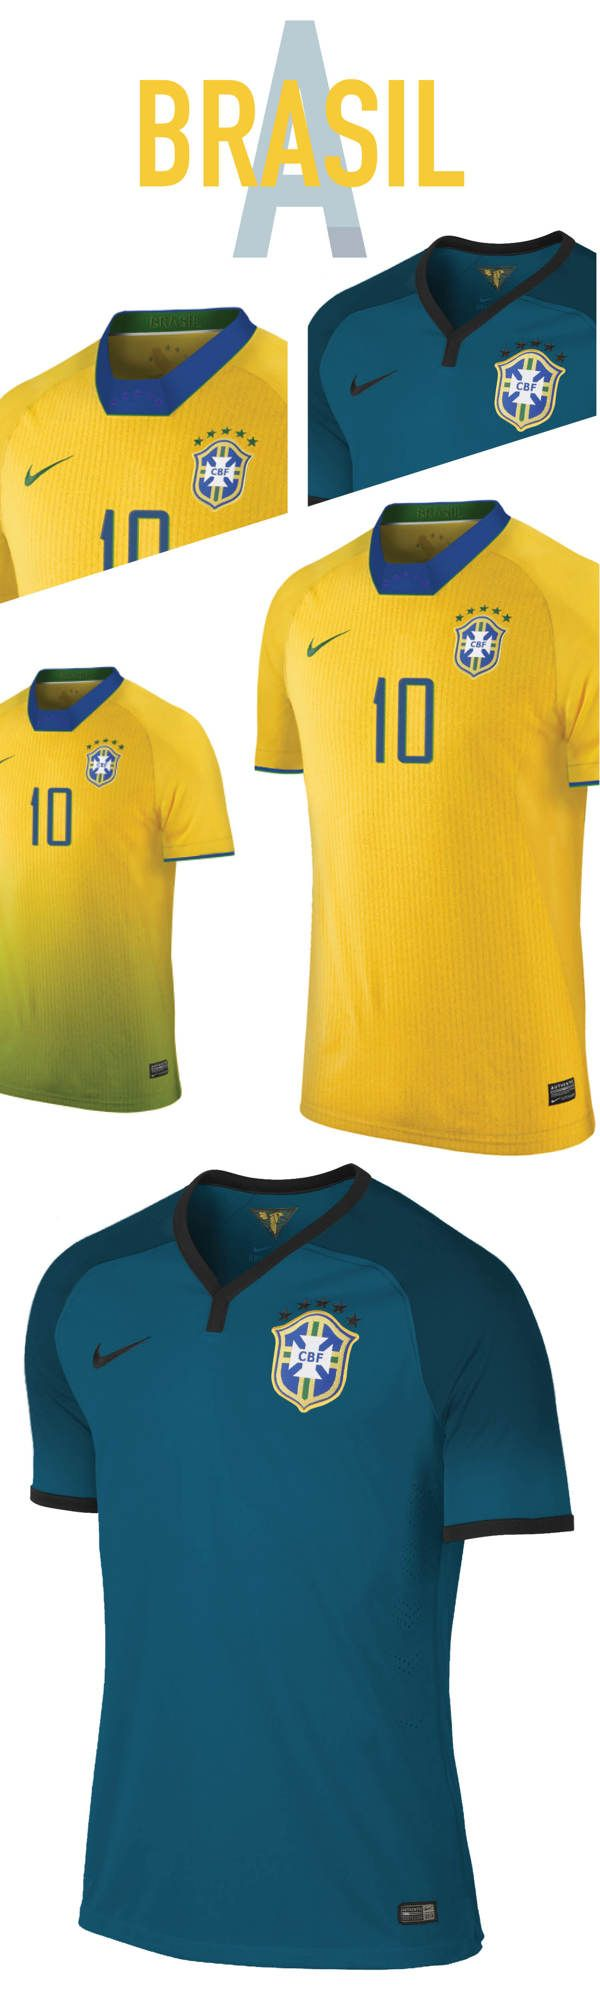 Brasil. World Cup. Group A. Concepts on Behance